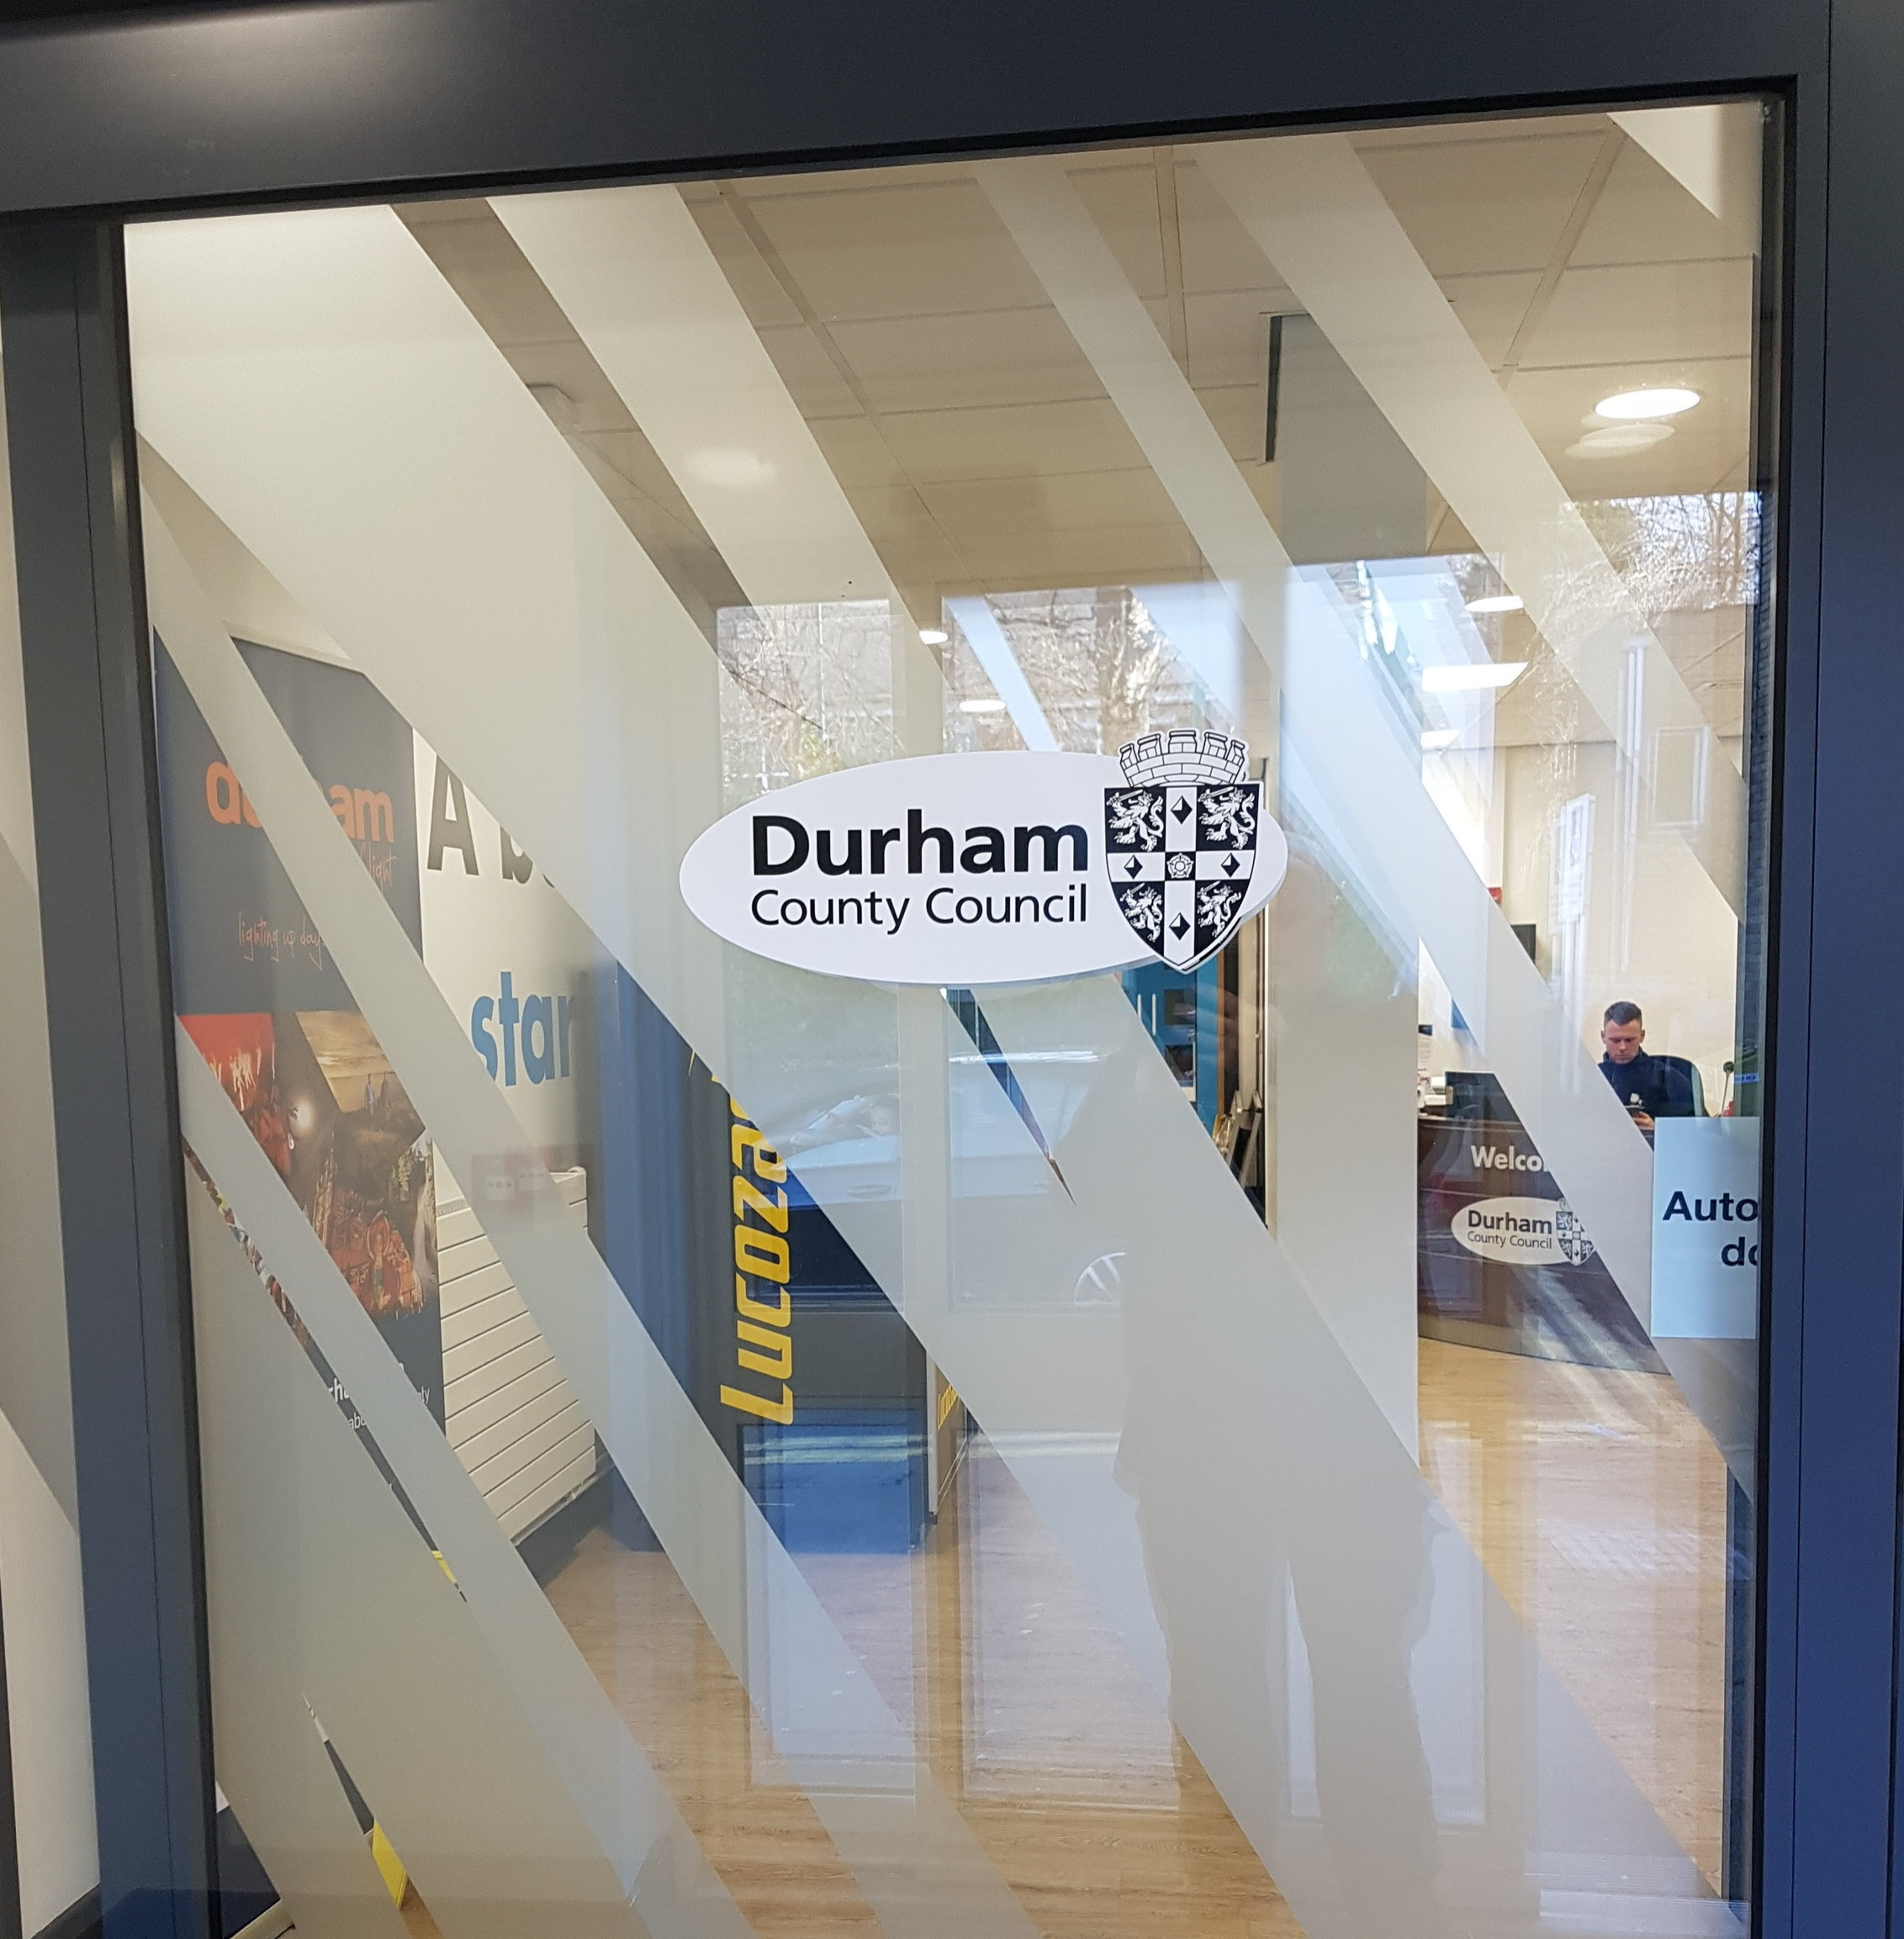 DURHAM COUNTY COUNCIL   Durham logo window graphic plus frosted vinyl stripes.